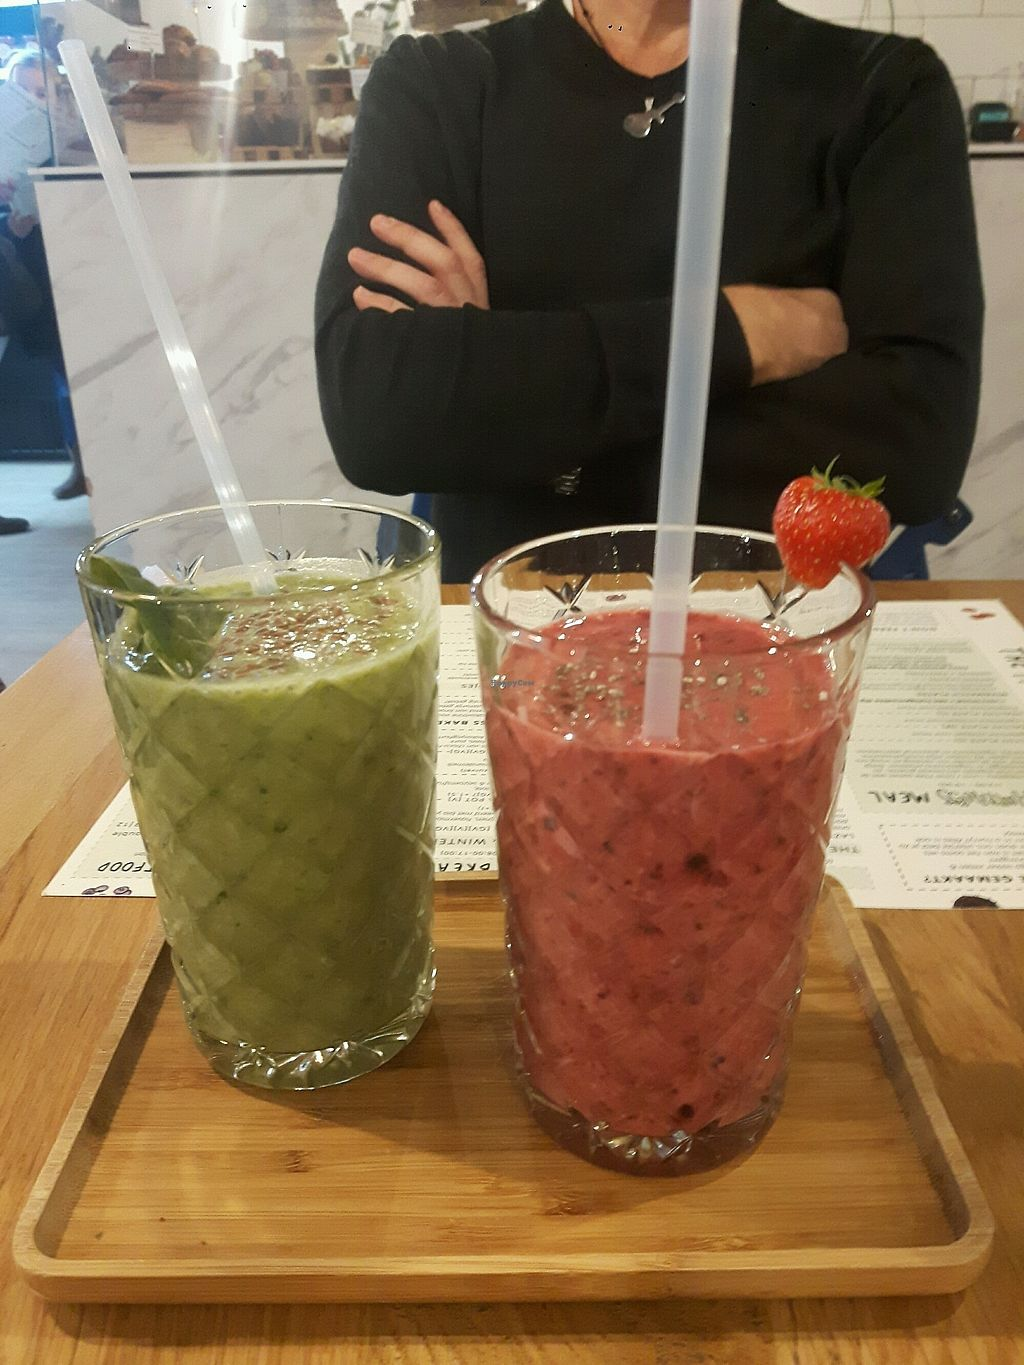 "Photo of The Happiness Kitchen  by <a href=""/members/profile/SusanneVerbeek"">SusanneVerbeek</a> <br/>Healthy and yummie smoothies  <br/> January 6, 2018  - <a href='/contact/abuse/image/92700/343649'>Report</a>"